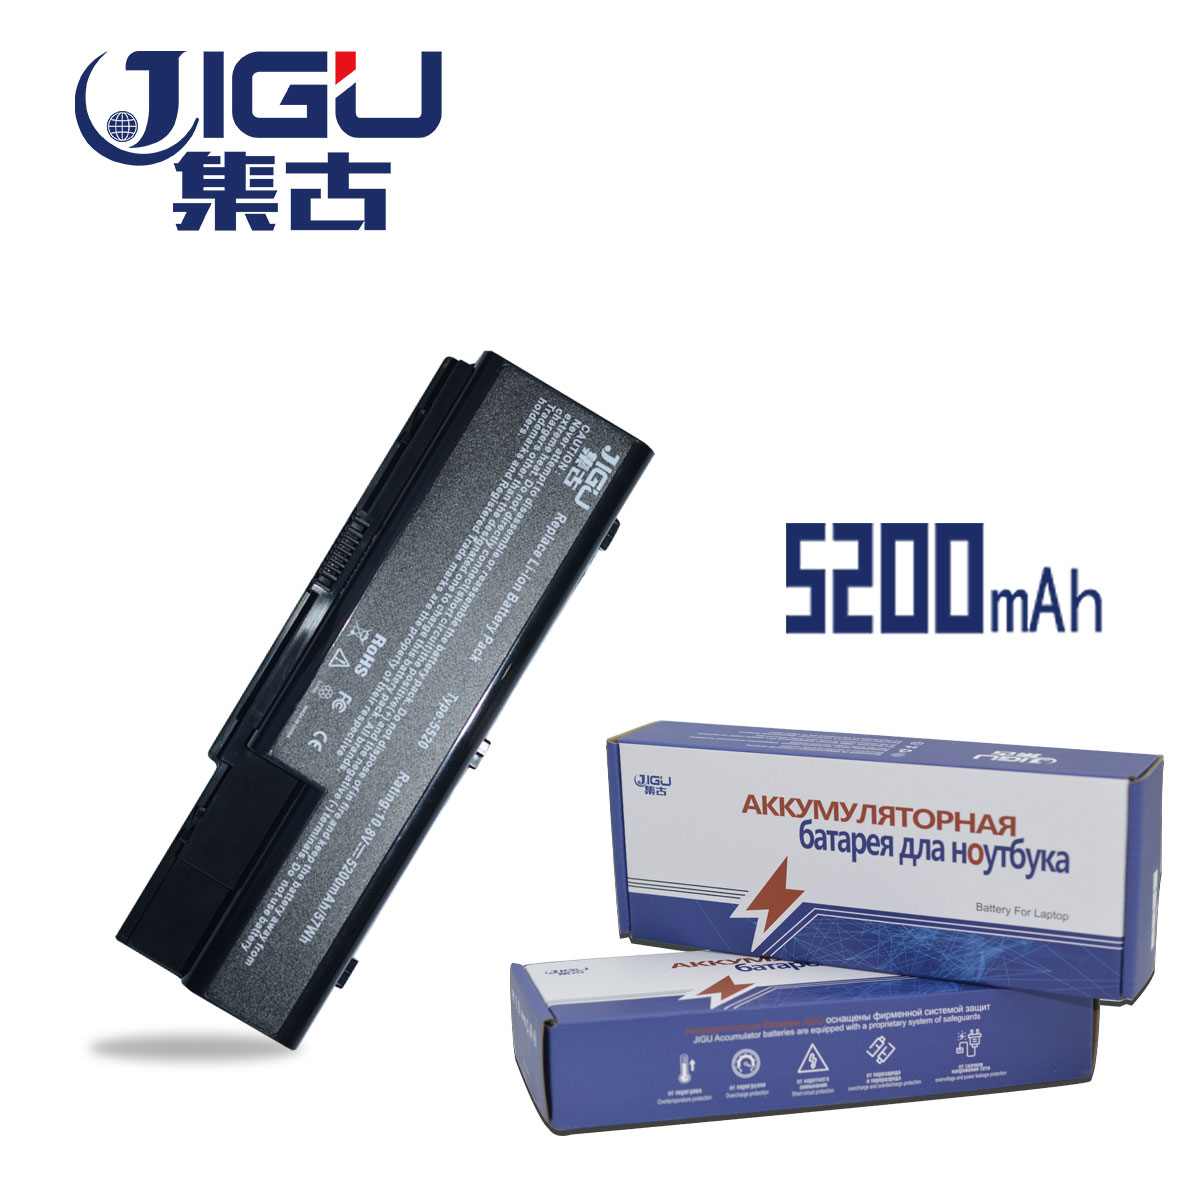 JIGU AS07B31 AS07B32 AS07B41 AS07B42 AS07B51 AS07B52 Laptop Battery For Acer Aspire 7720G 7720Z 7730 7730G 7730Z 7730ZG golooloo 14 8v battery for acer aspire 5920g 5520g 5315 as07b31 as07b32 as07b42 as07b41 as07b51 as07b52 as07b61 as07b71 as07b72